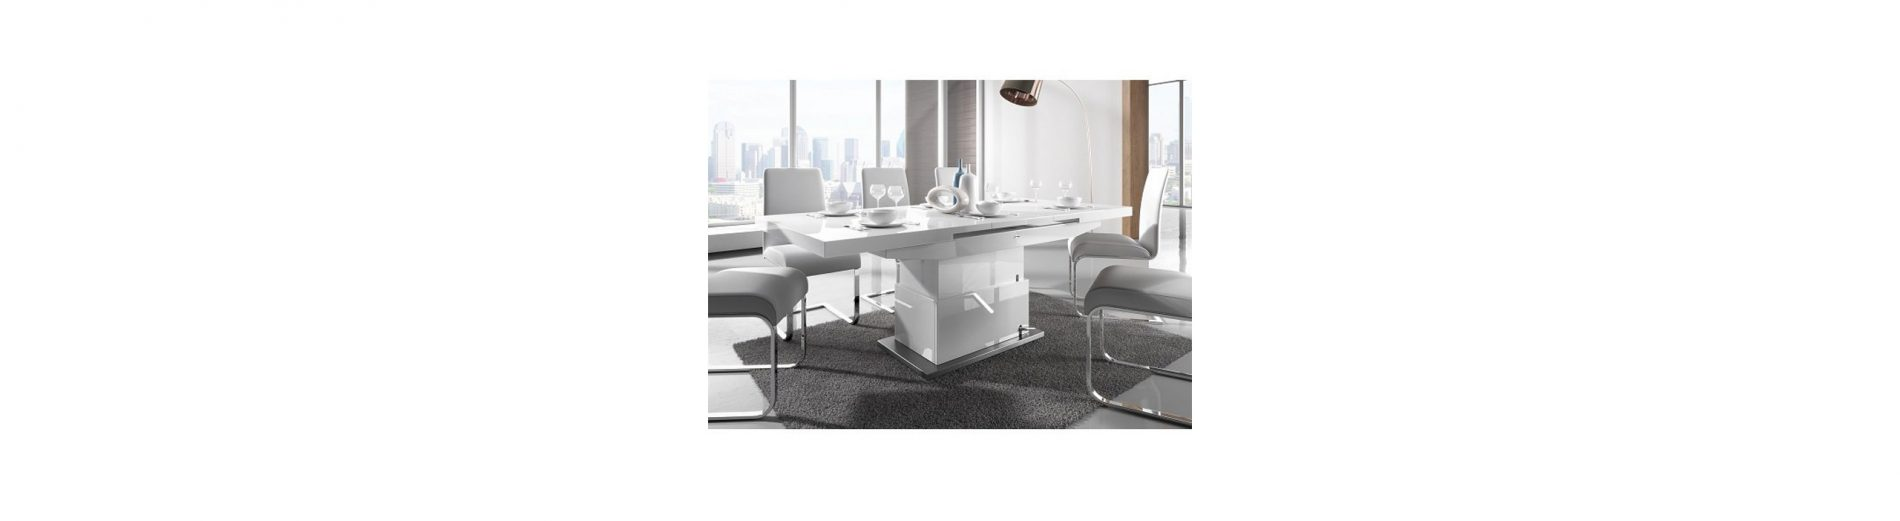 Elgin Introduces New Approach To Space Efficiency: Coffee Tables Convertible Into Dining Tables